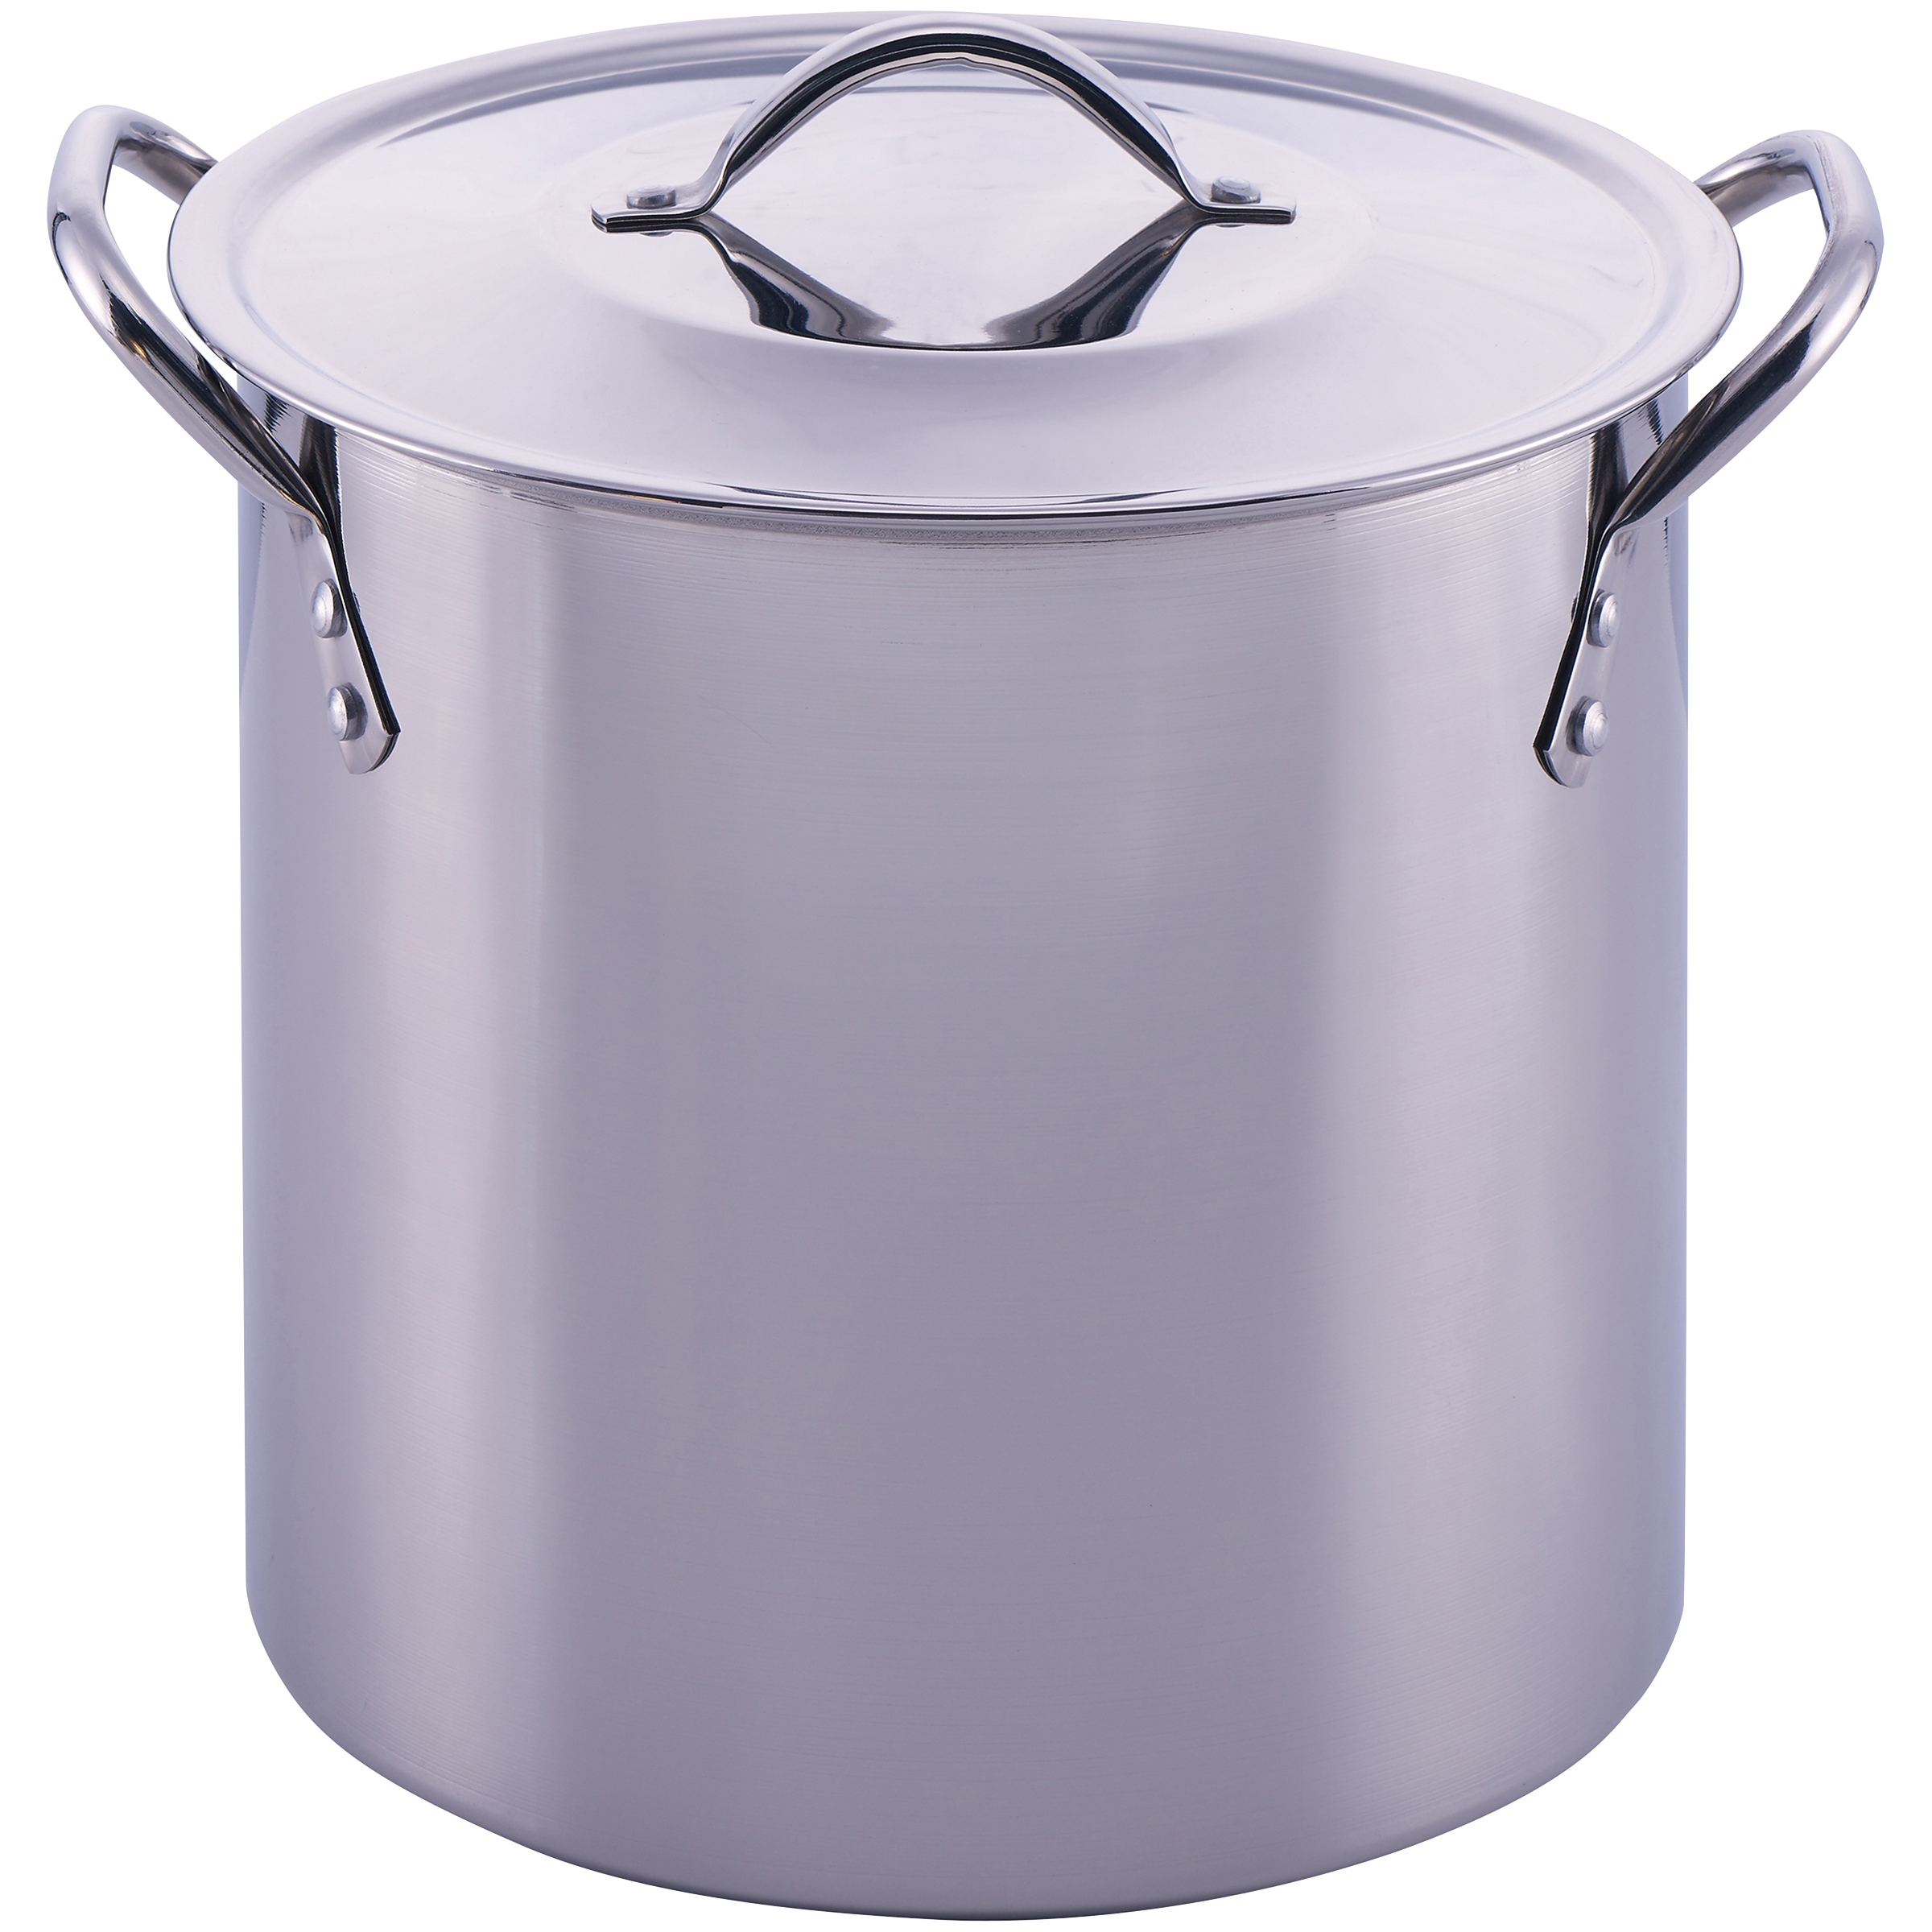 Mainstays 8 Quart Stock Pot with Lid, Stainless Steel